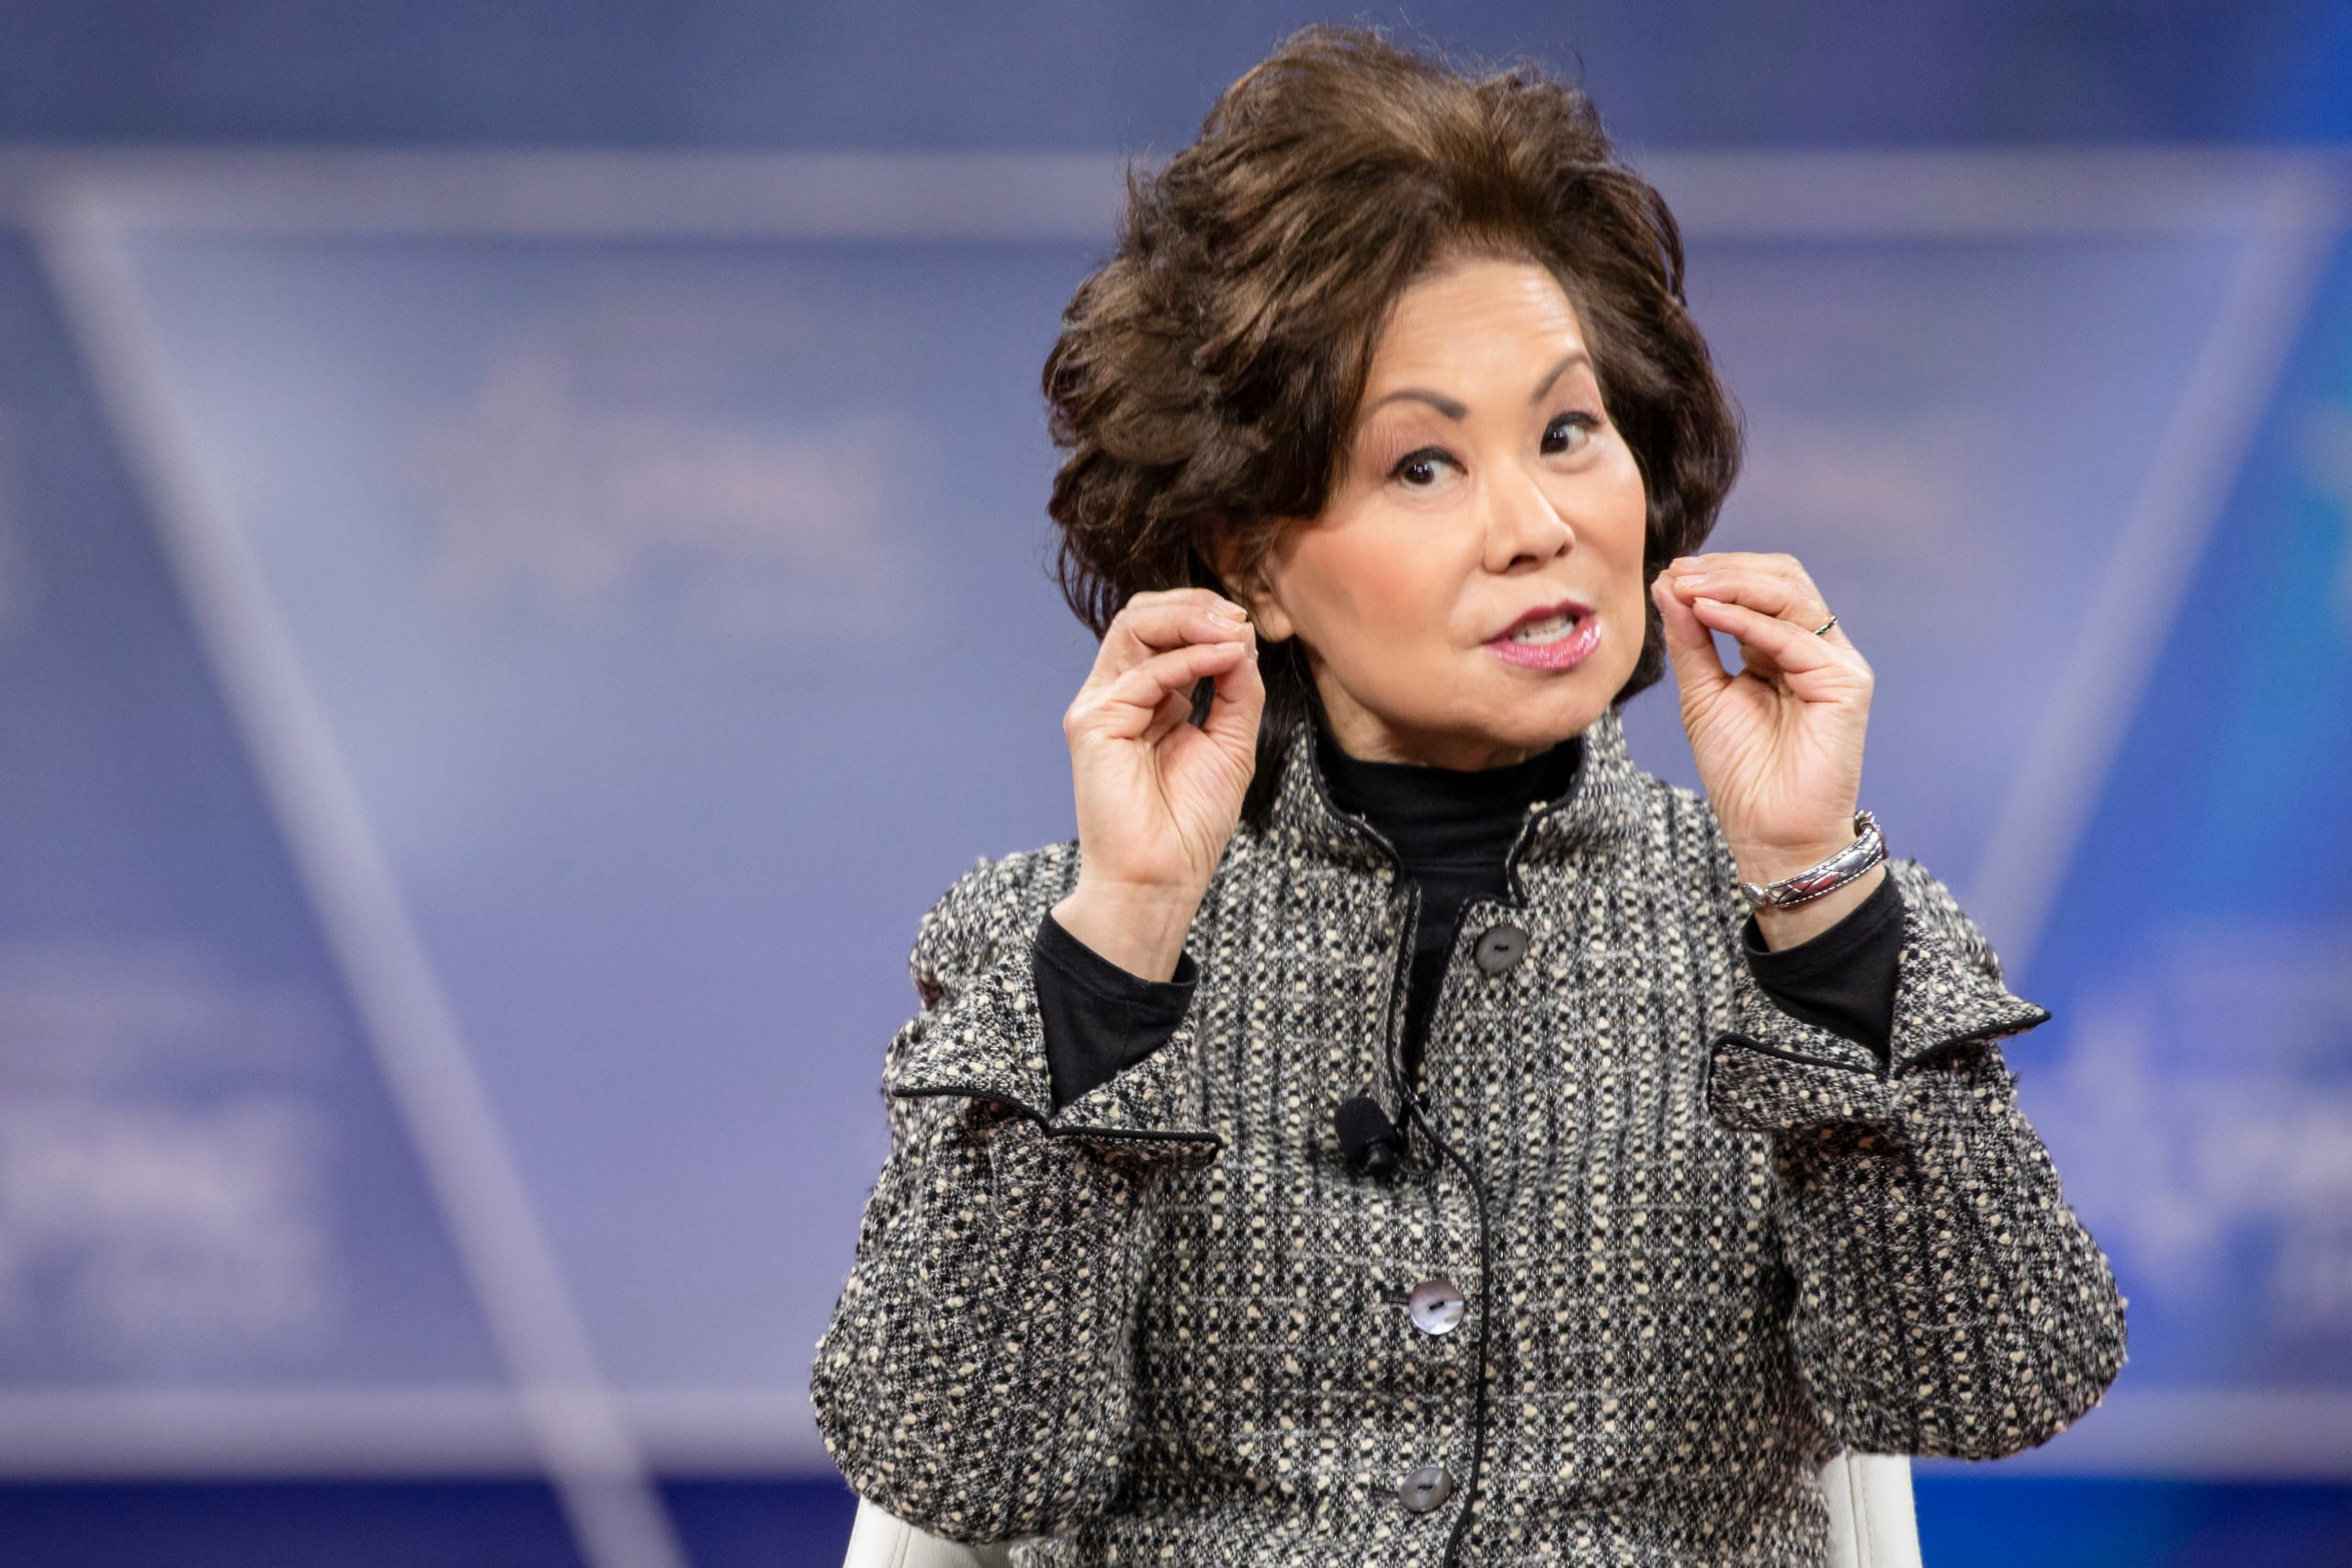 NATIONAL HARBOR, MD - FEBRUARY 28: Secretary of the Department of Transportation Elaine Chao speaks during the Conservative Political Action Conference 2020 (CPAC) hosted by the American Conservative Union on February 28, 2020 in National Harbor, MD. (Photo by Samuel Corum/Getty Images)